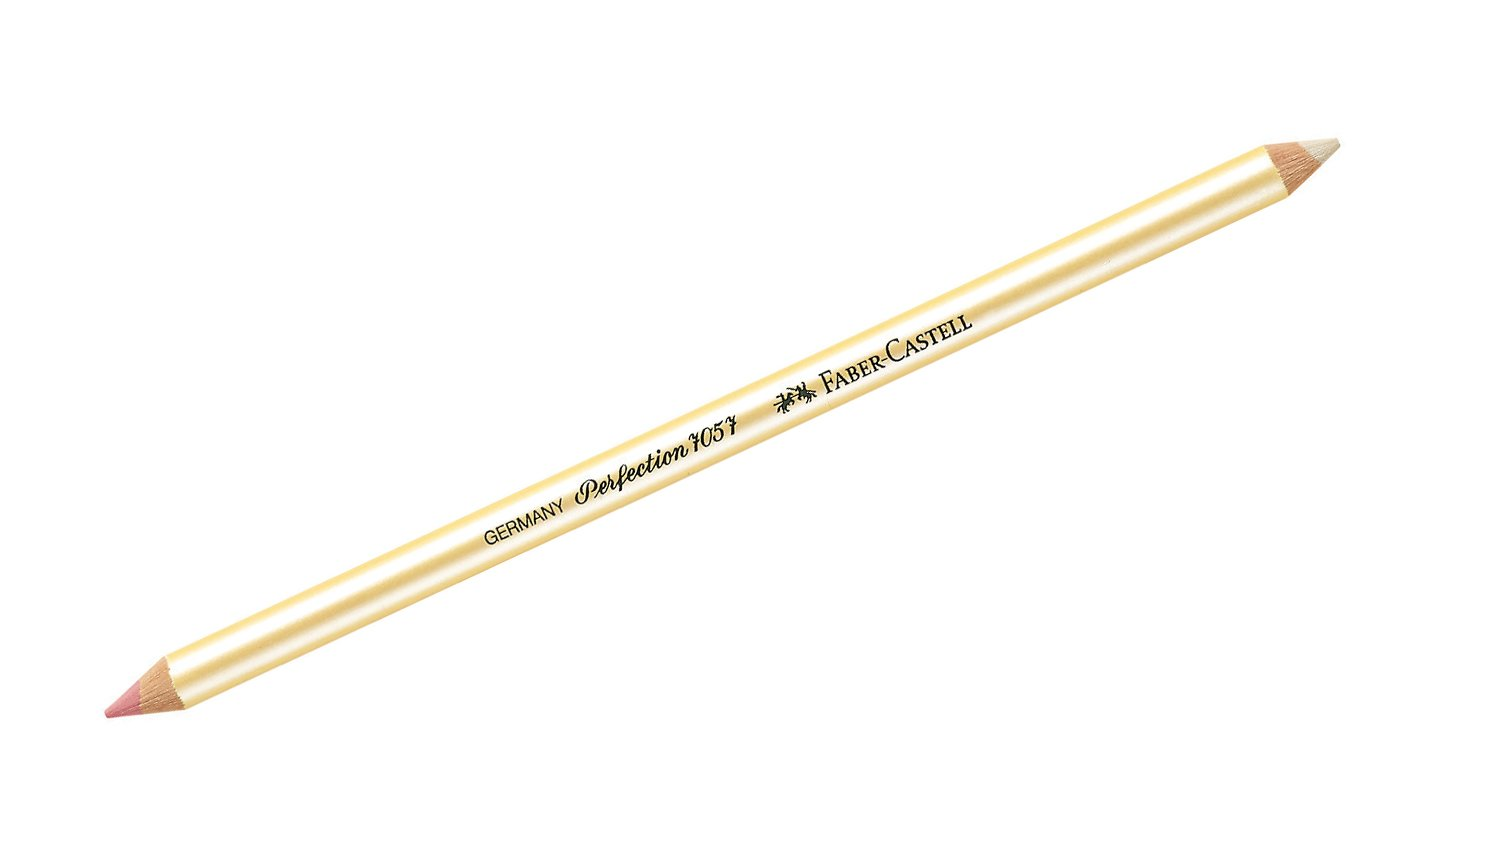 Faber Castell : Perfection Pencil : Double Ended Eraser West Design Products Ltd 185712